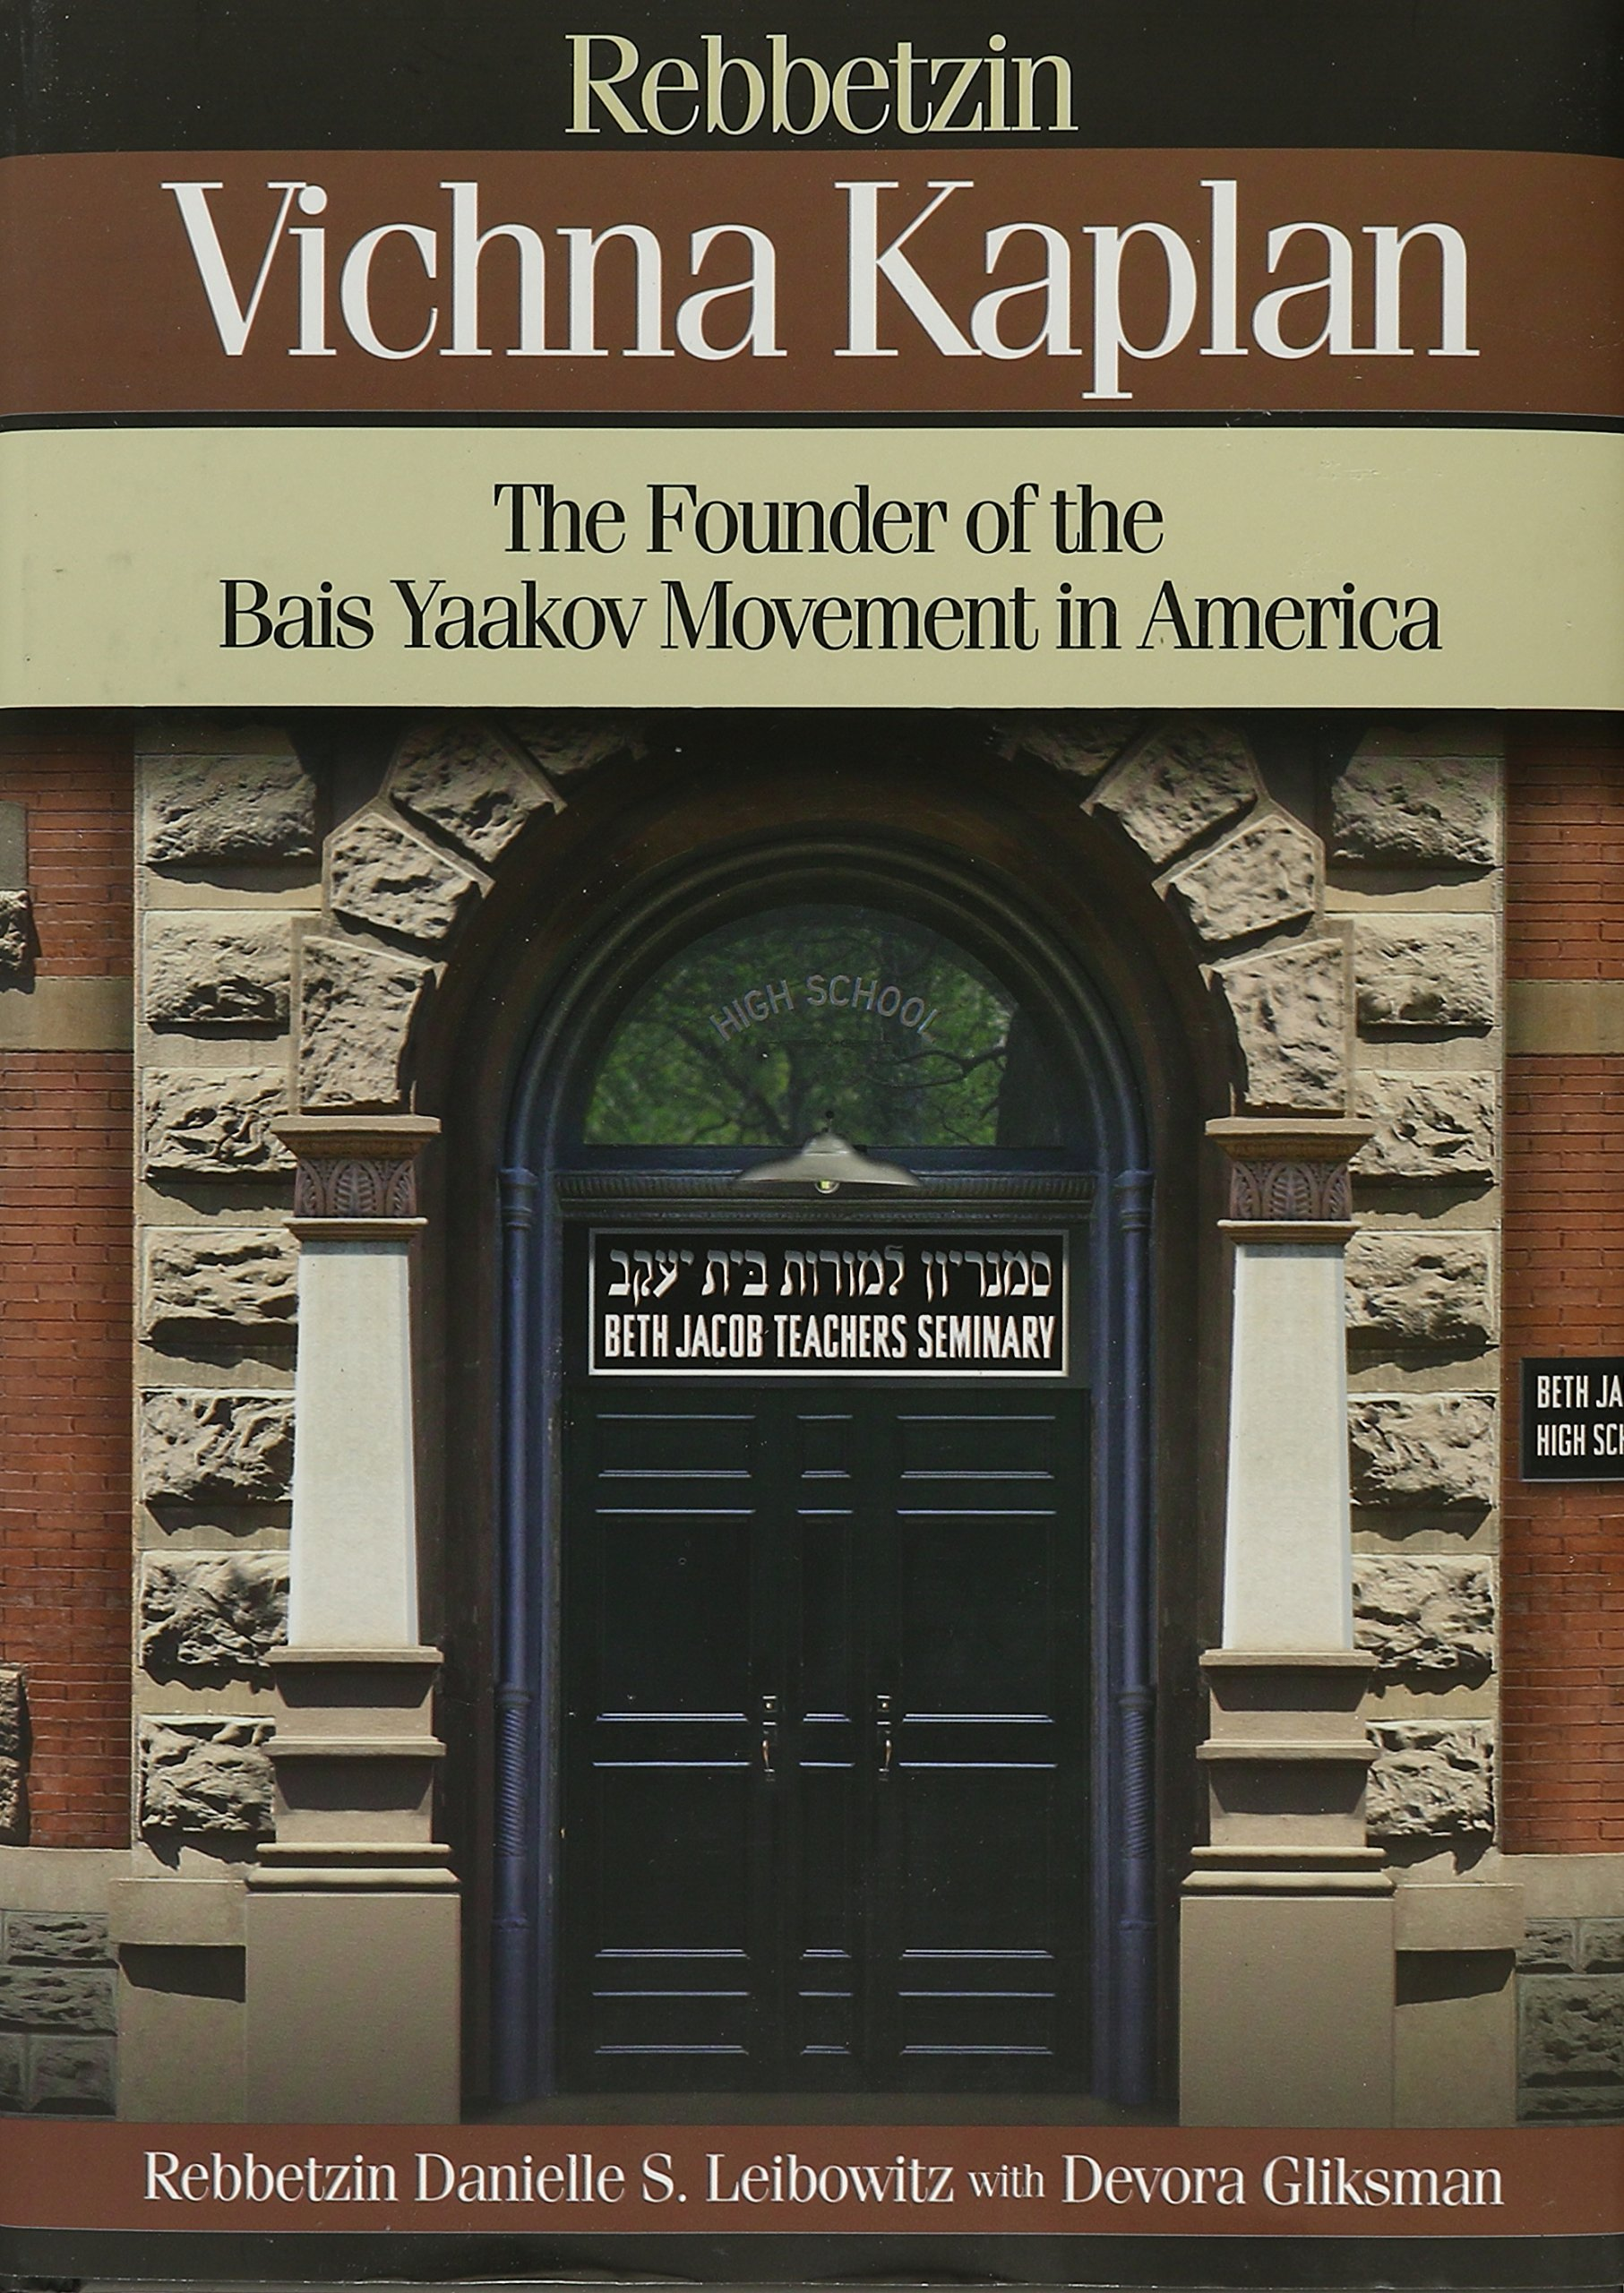 Download Rebbetzin Vichna Kaplan - The Founder of the Bais Yaakov Movement in America ebook